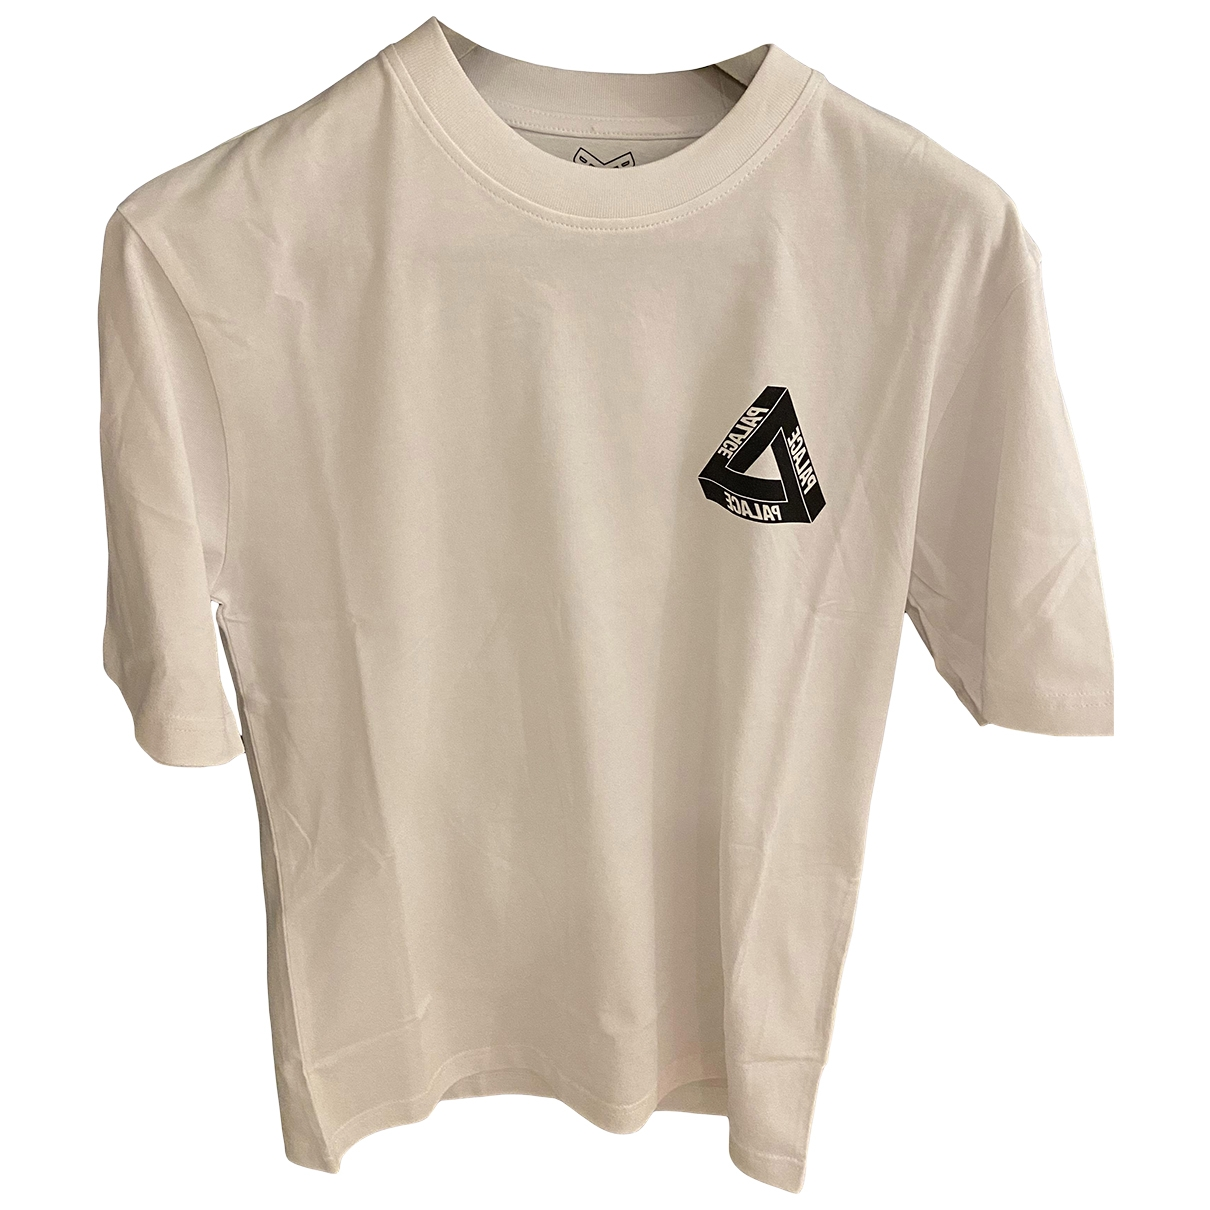 Palace \N White Cotton  top for Women S International